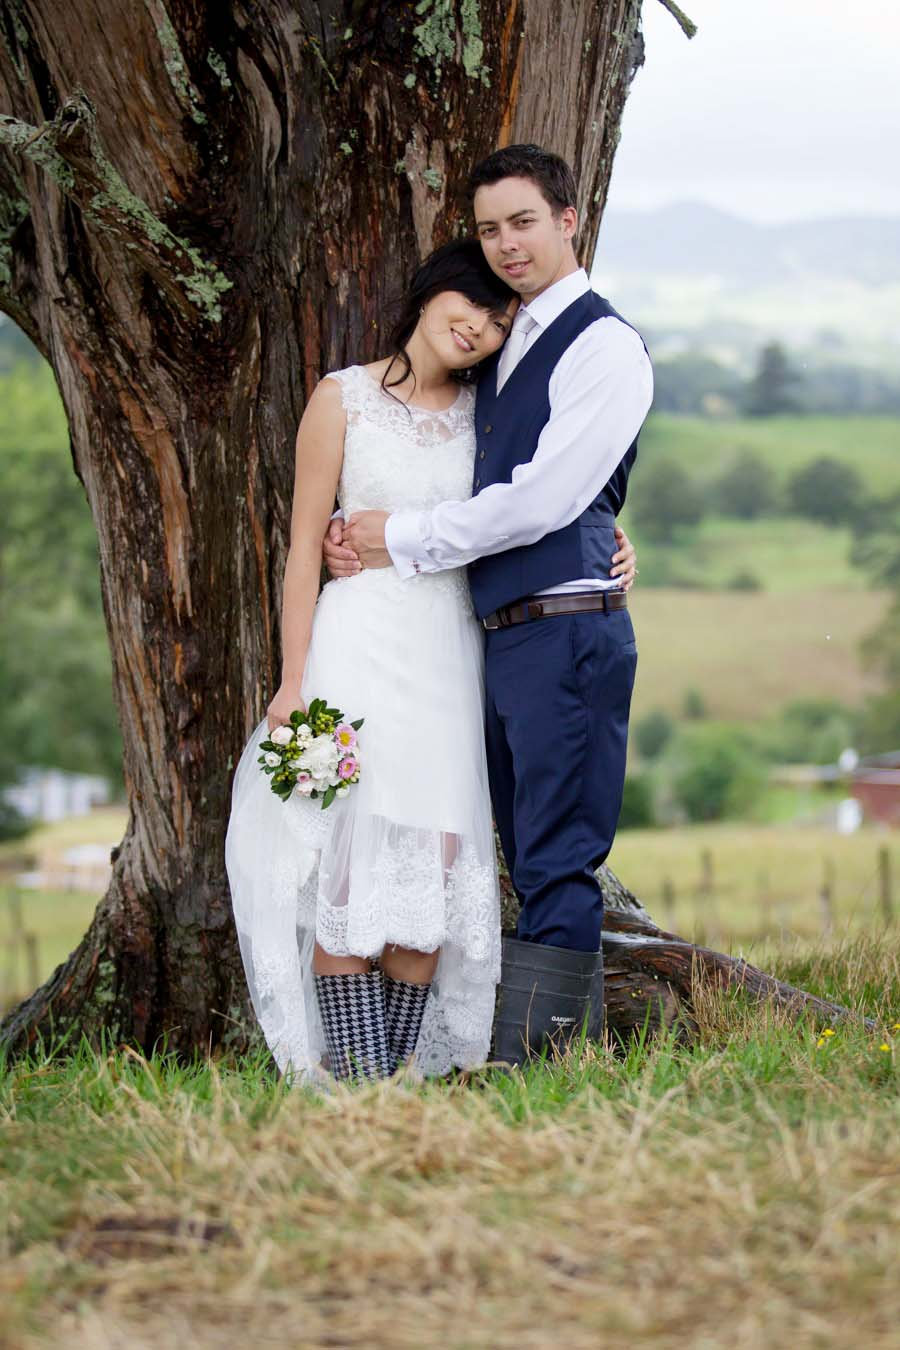 maungaturoto_wedding_nz_photographer_auckland-724